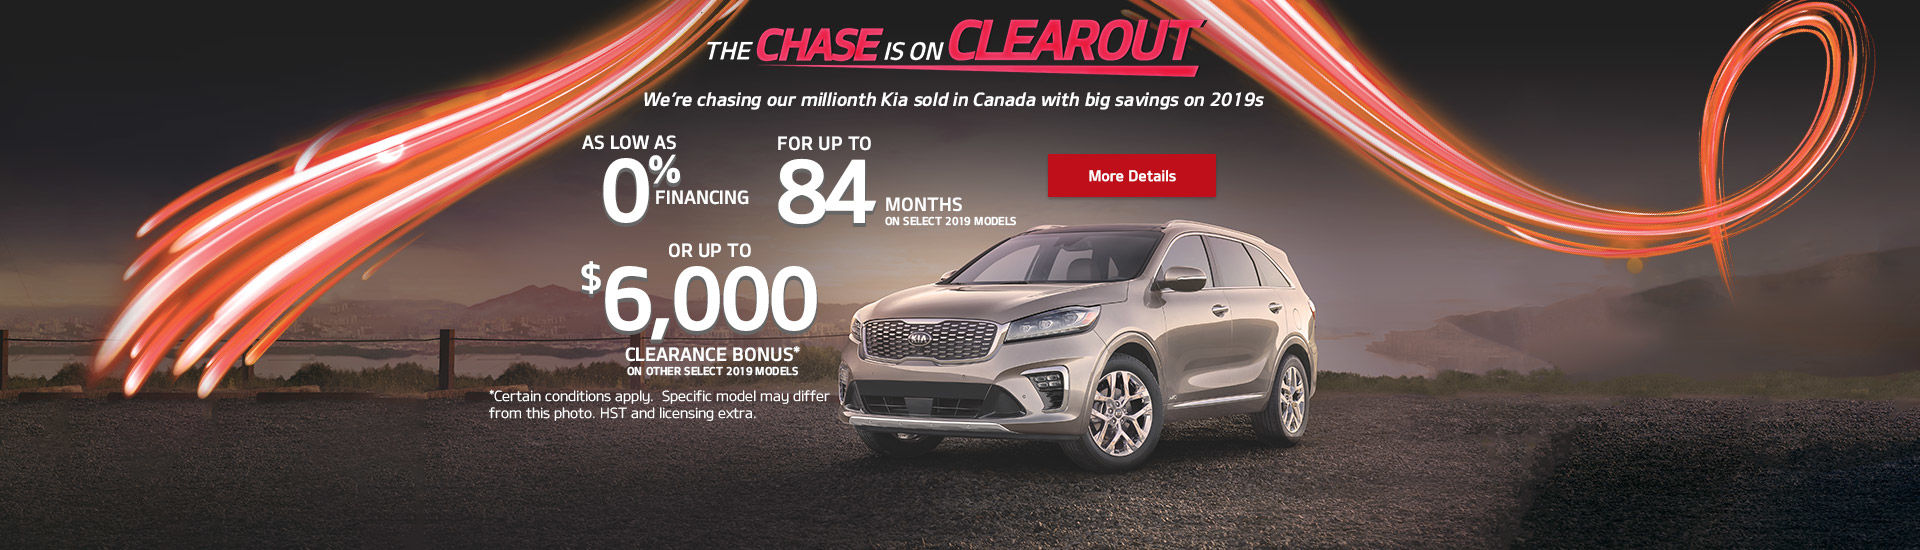 The Kia Chase Is On Clearout!